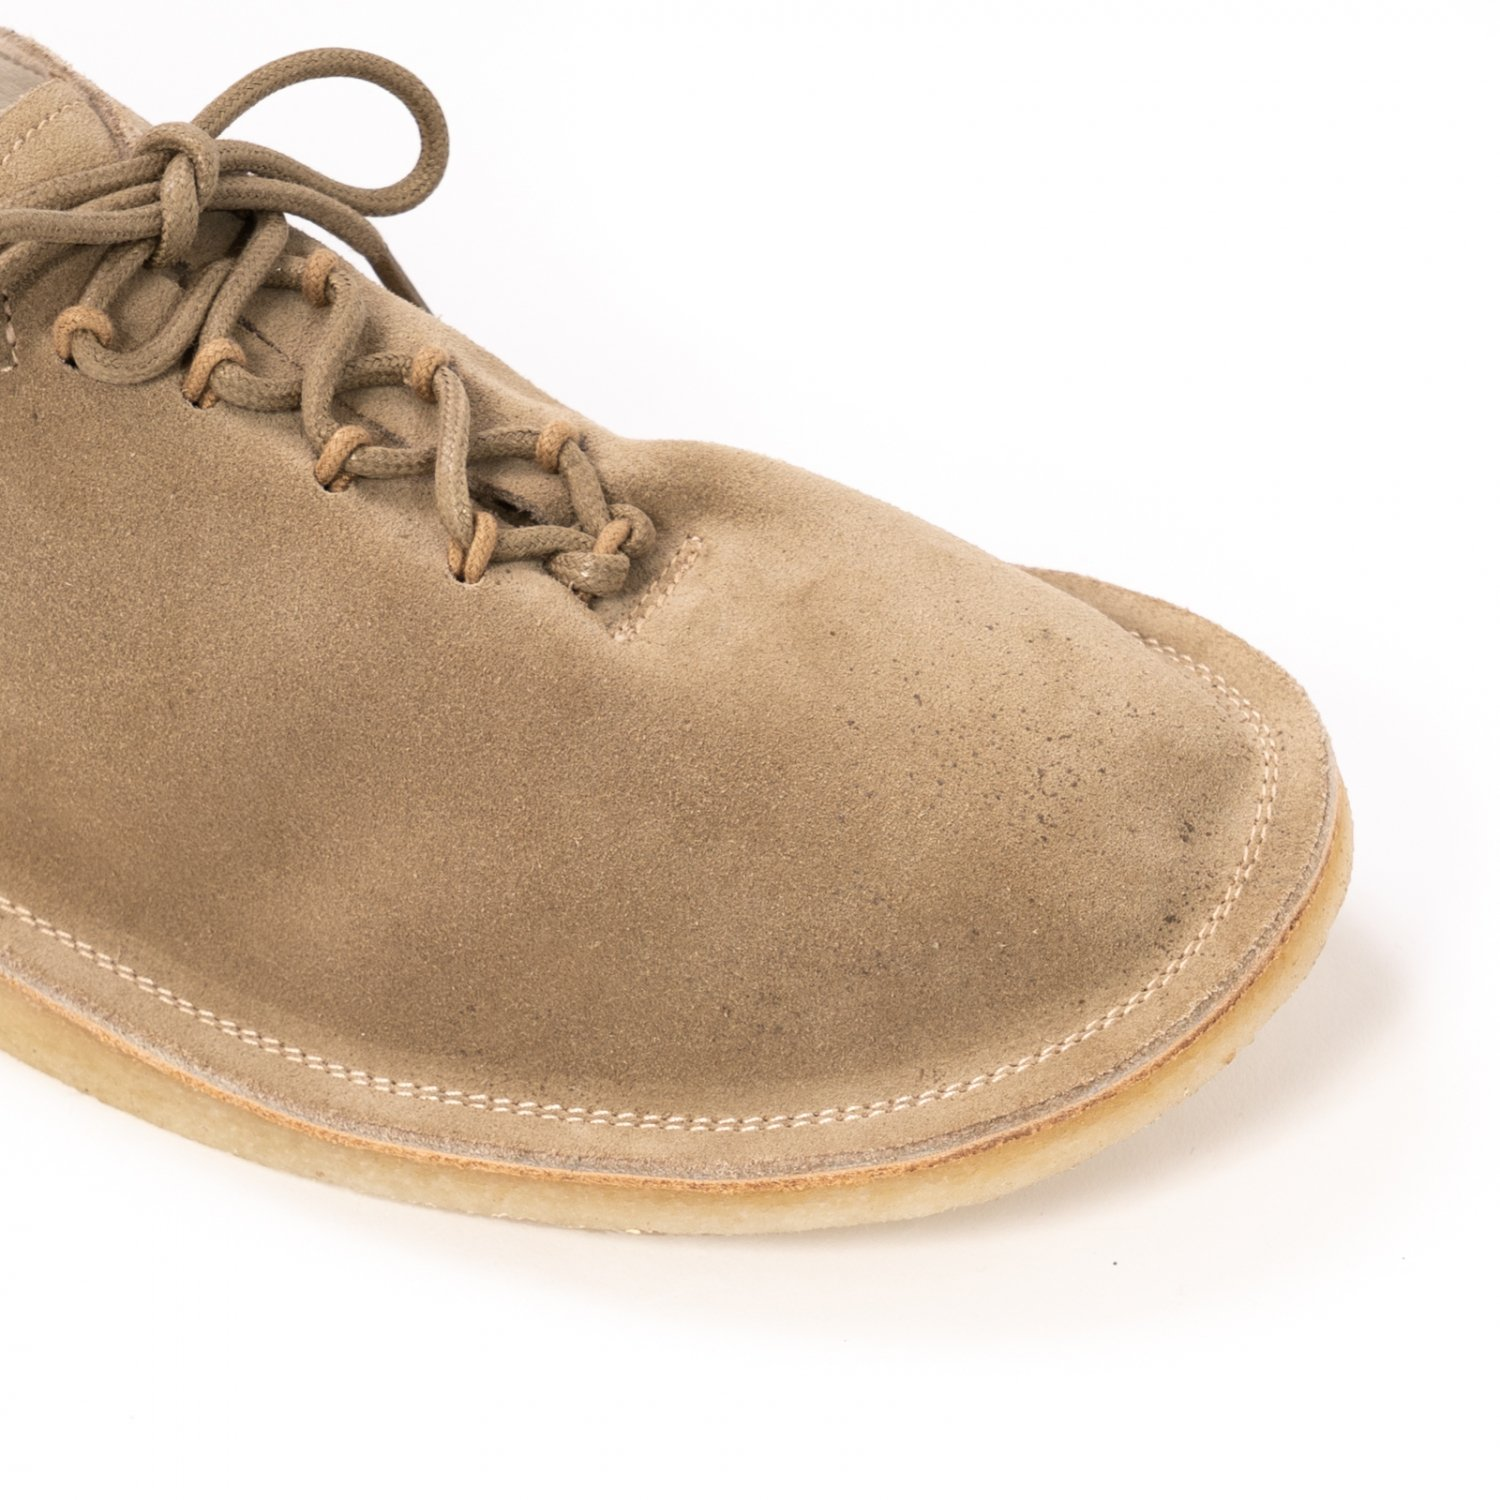 hobo * COW LEATHER LACE UP SHOES * Beige